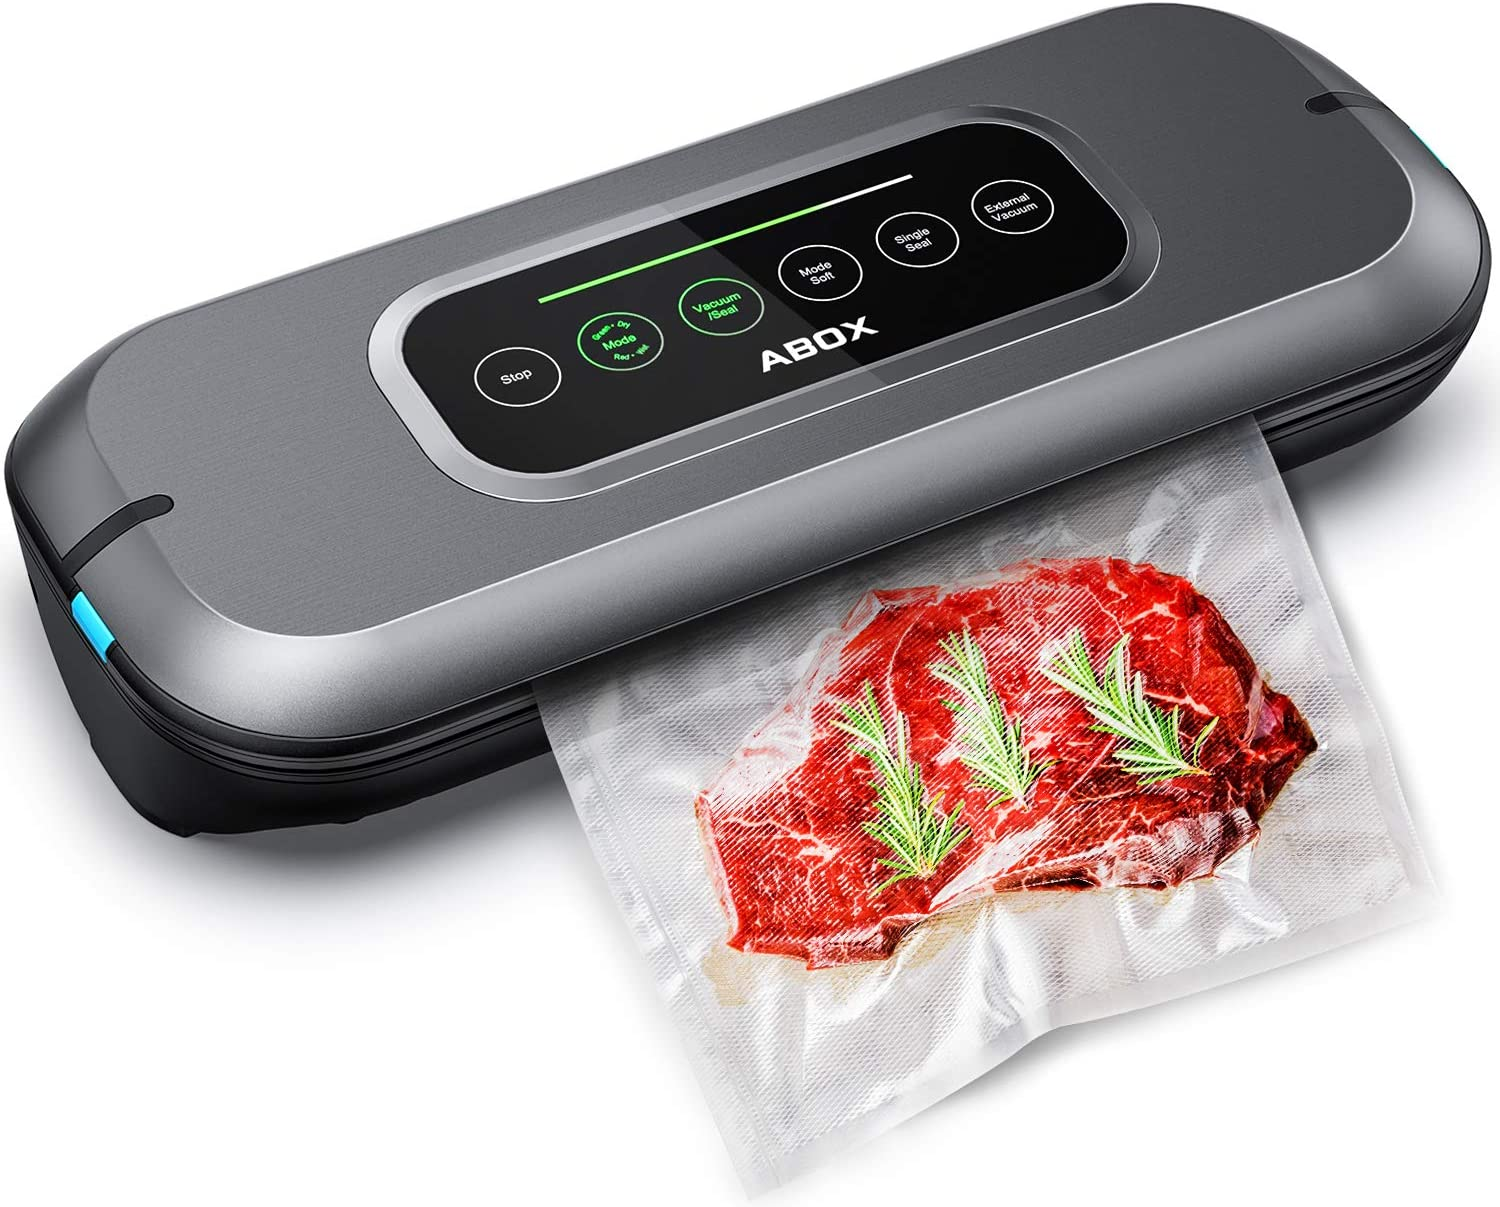 ABOX Vacuum Sealer Machine, Full Automatic Food Saver Machine V66 for Food Preservation, with Built-in Cutter and 10 Bags